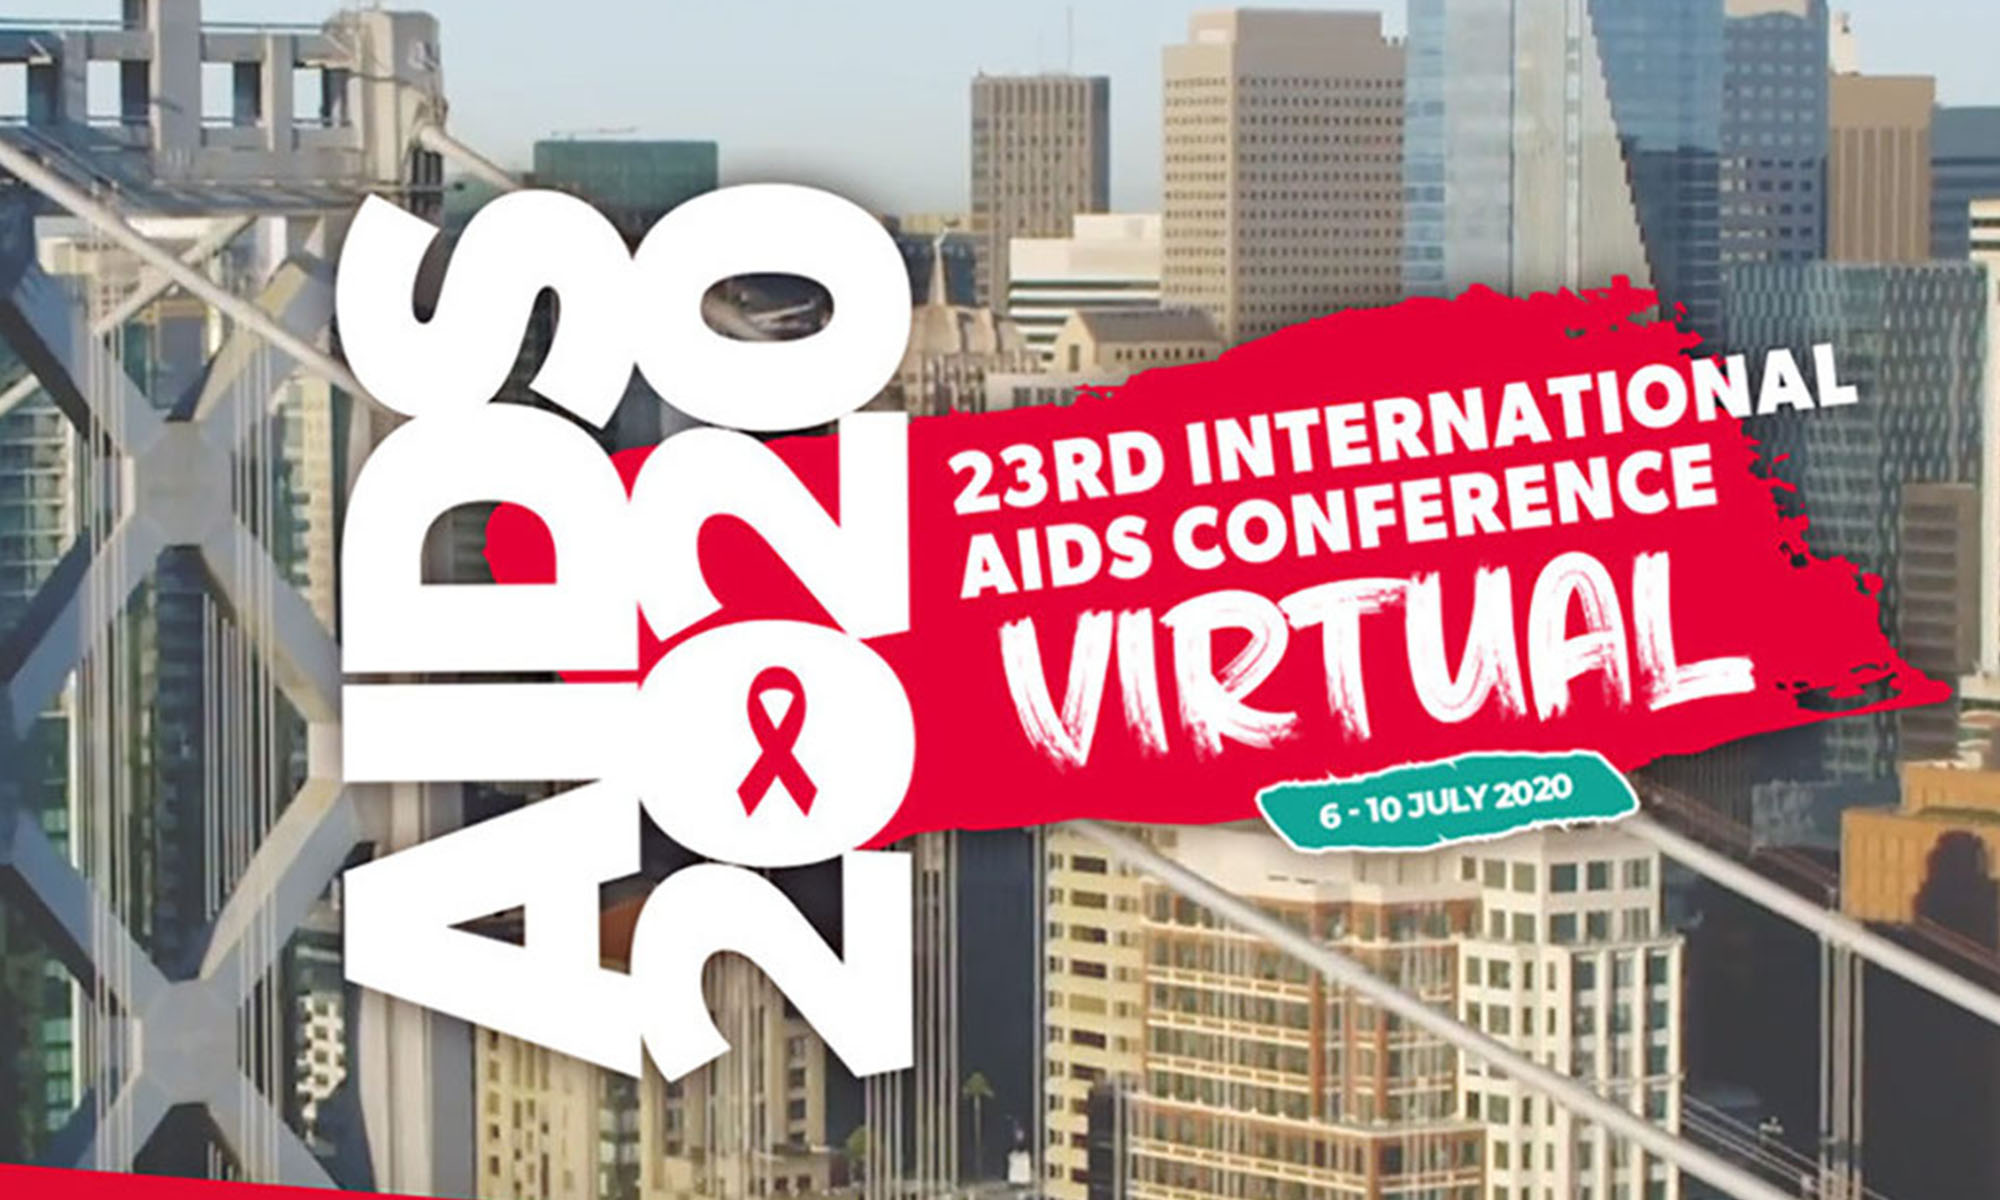 MCI and UgoVirtual pull off first and largest virtual AIDS conference